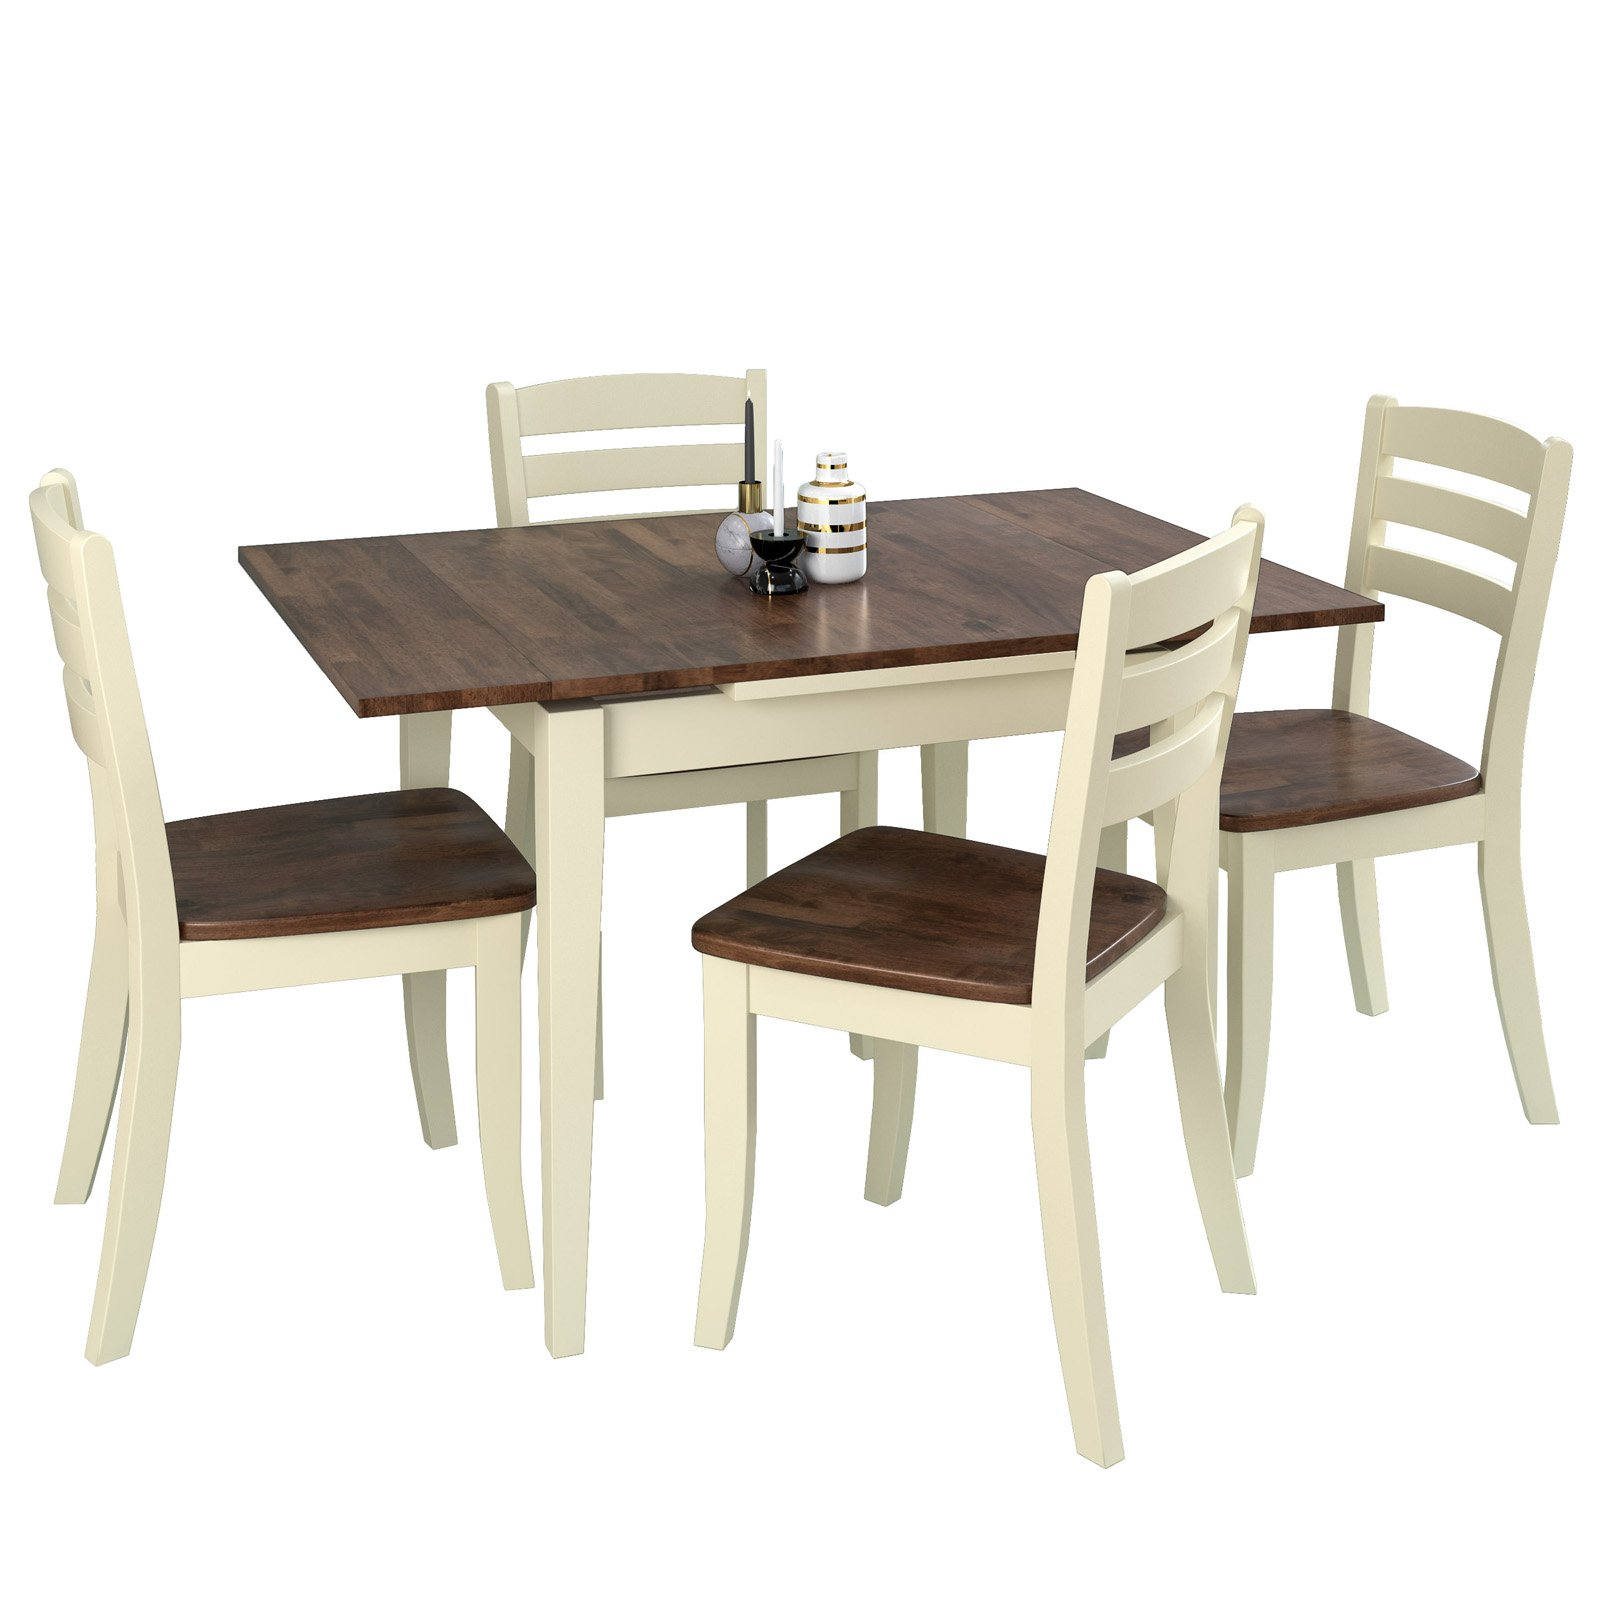 Corliving Dillon 5 Piece Rectangular Extendable Dining Set Intended For Most Recently Released Smyrna 3 Piece Dining Sets (View 18 of 25)